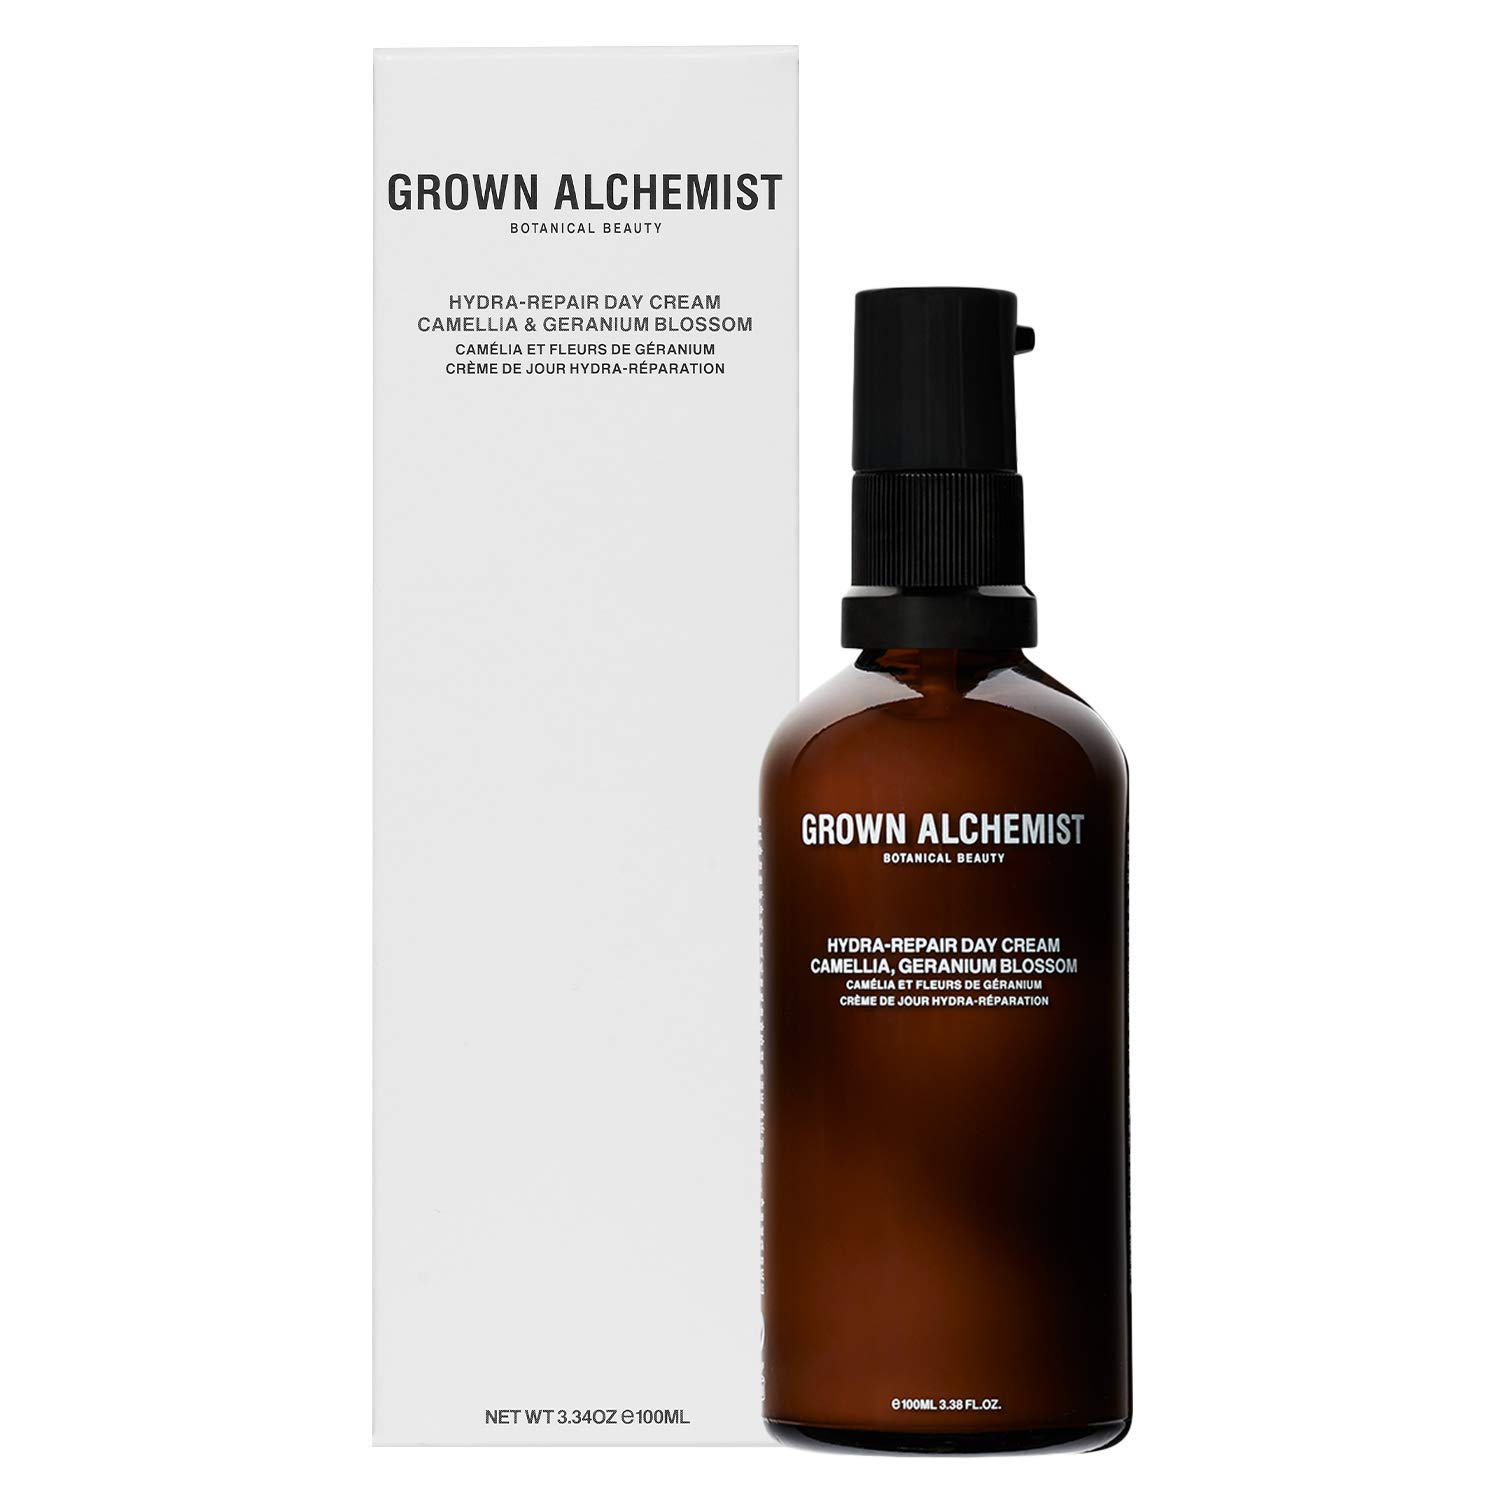 Grown Alchemist Hydra-Repair Day Cream - Camellia & Geranium Blossom - Face Moisturizer Made with Organic Ingredients (100ml / 3.38oz)